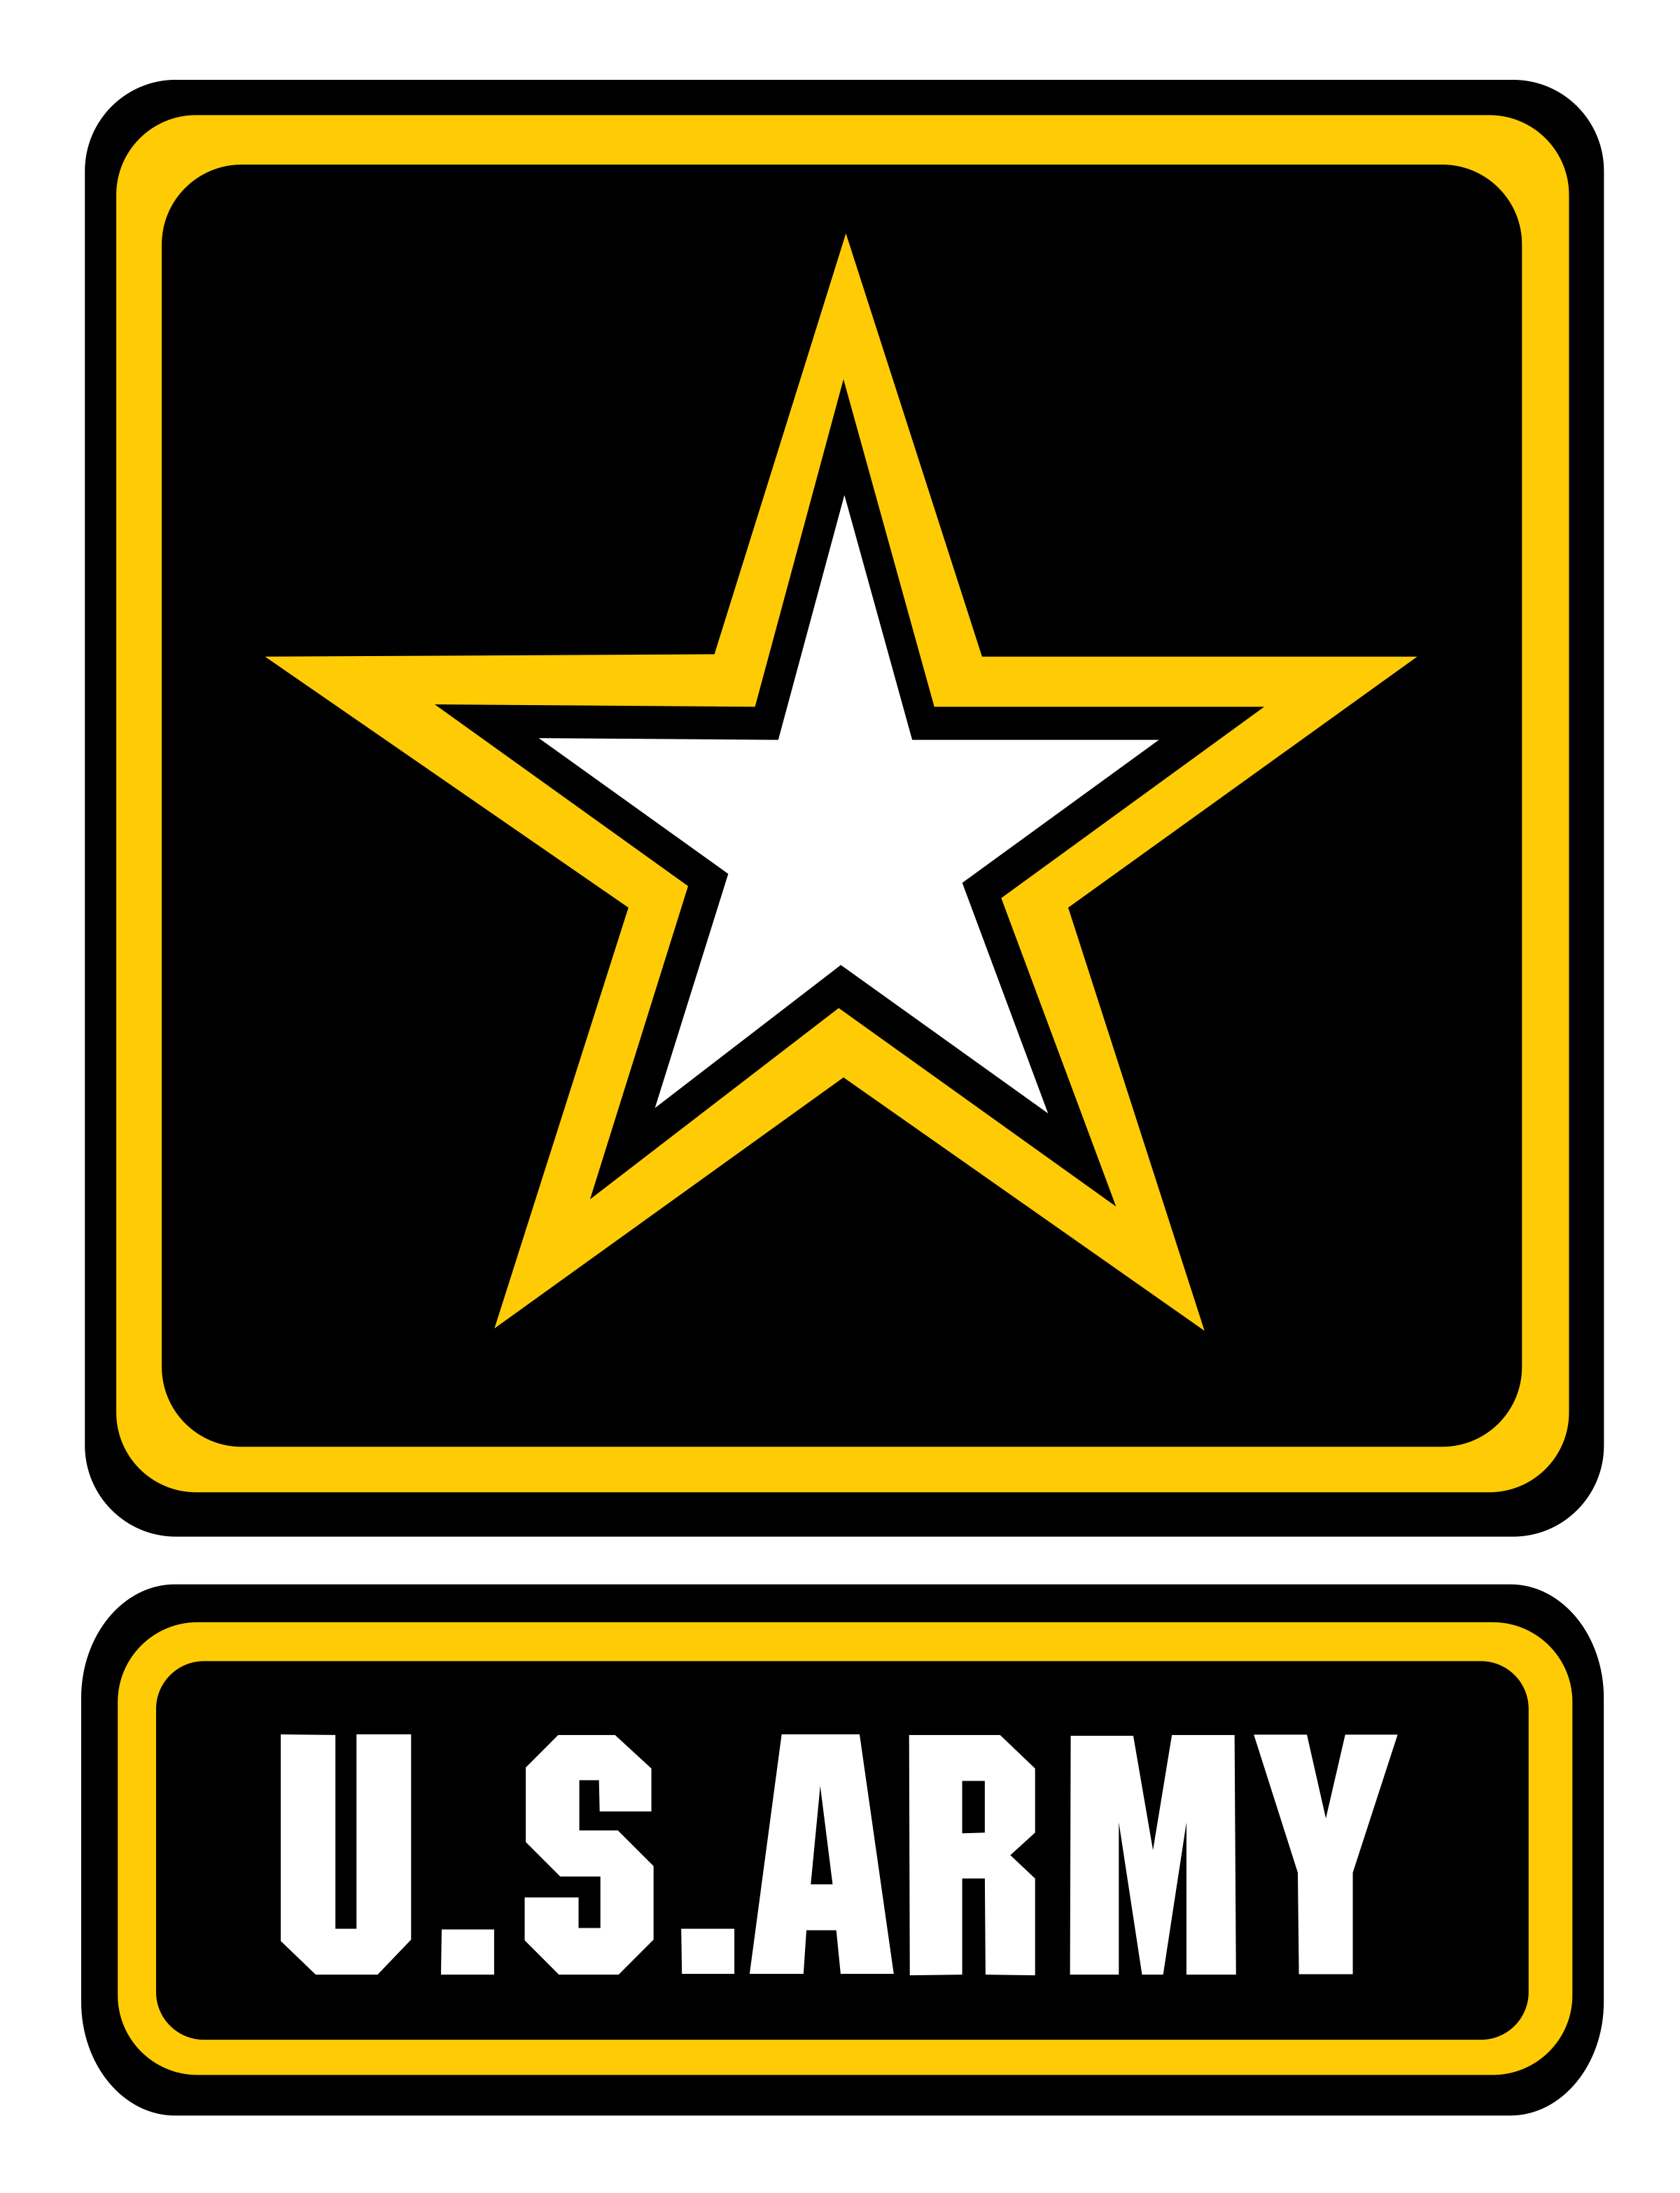 image library stock U s army clipart. United states logo national